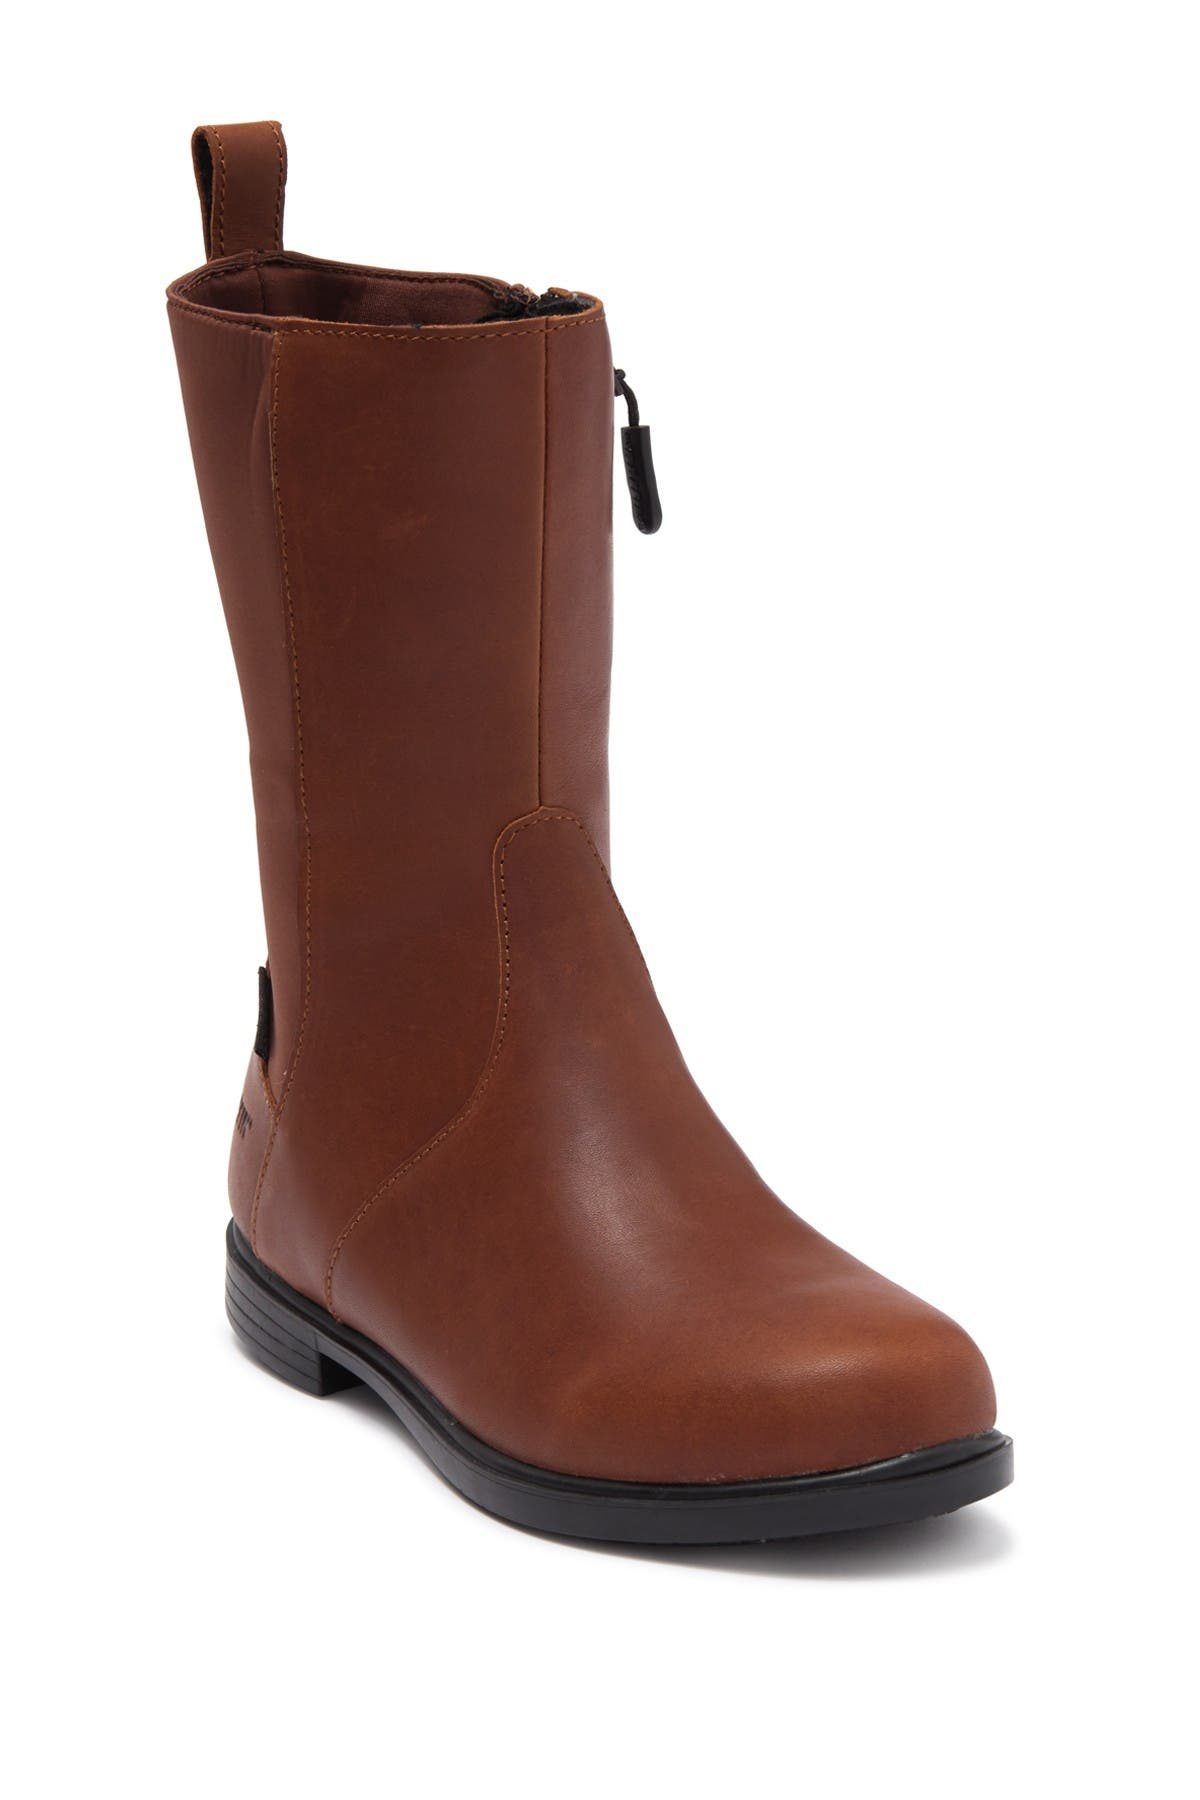 Image of BAFFIN Cambridge Calf Boot